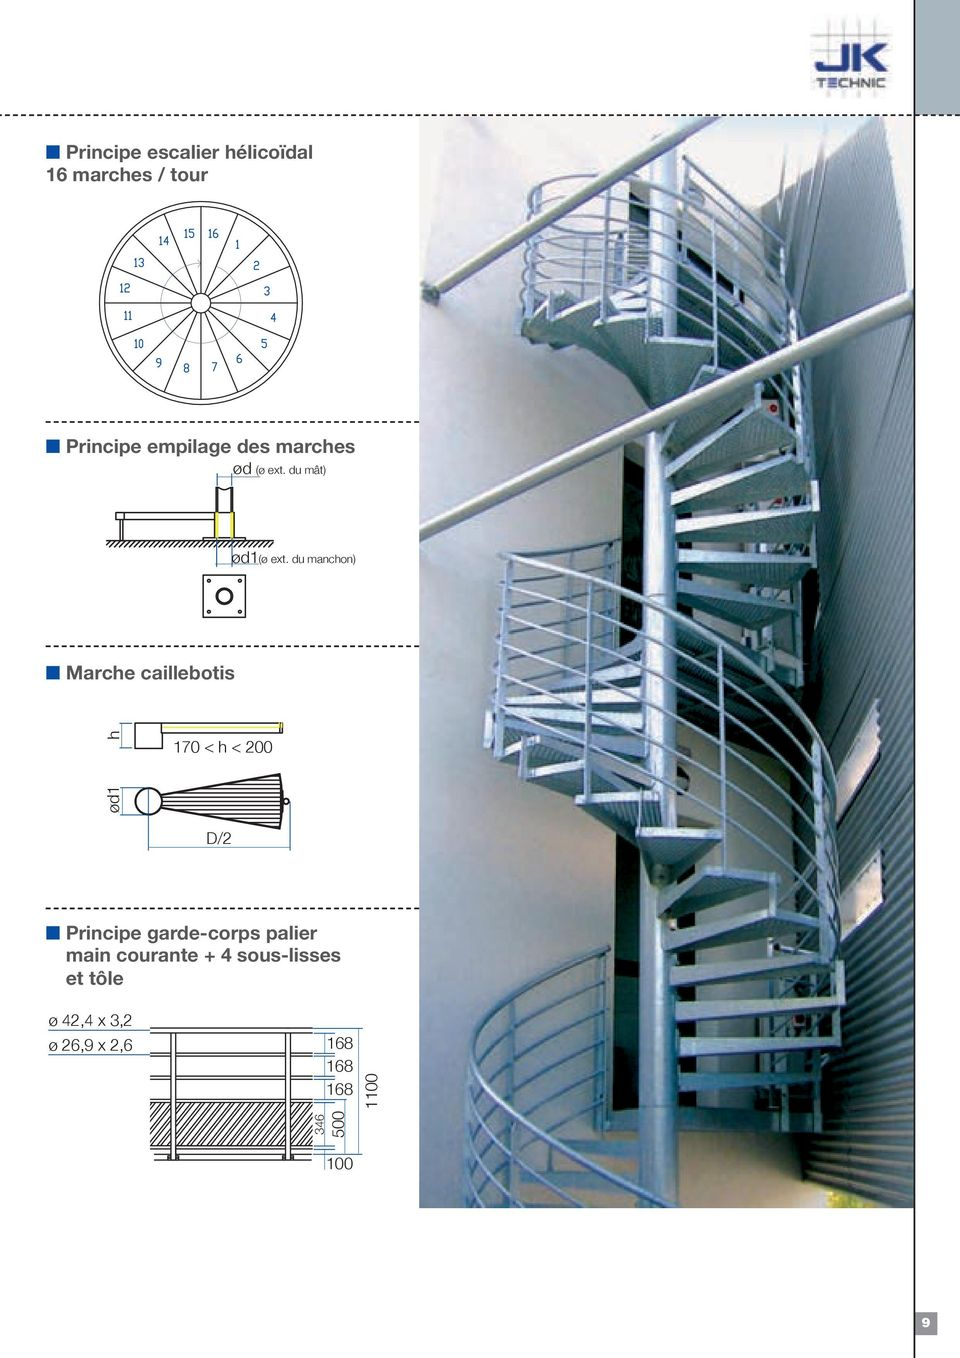 escalier helicoidal 16 marches